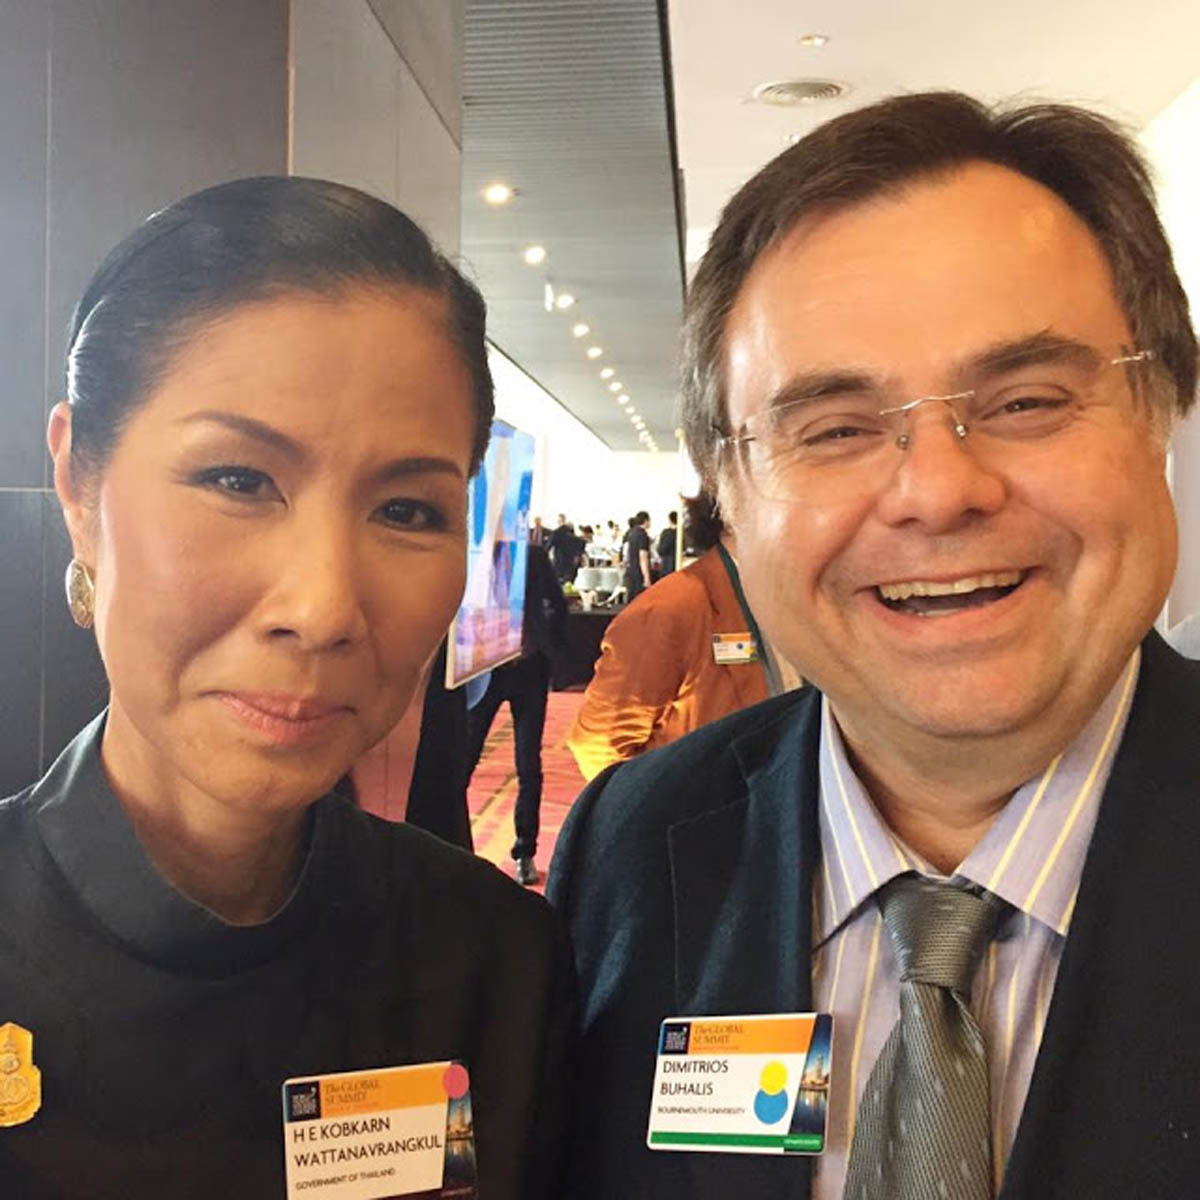 Buhalis with HE Kobkarn Wattanavrangkul Minister of Tourism for Thailand